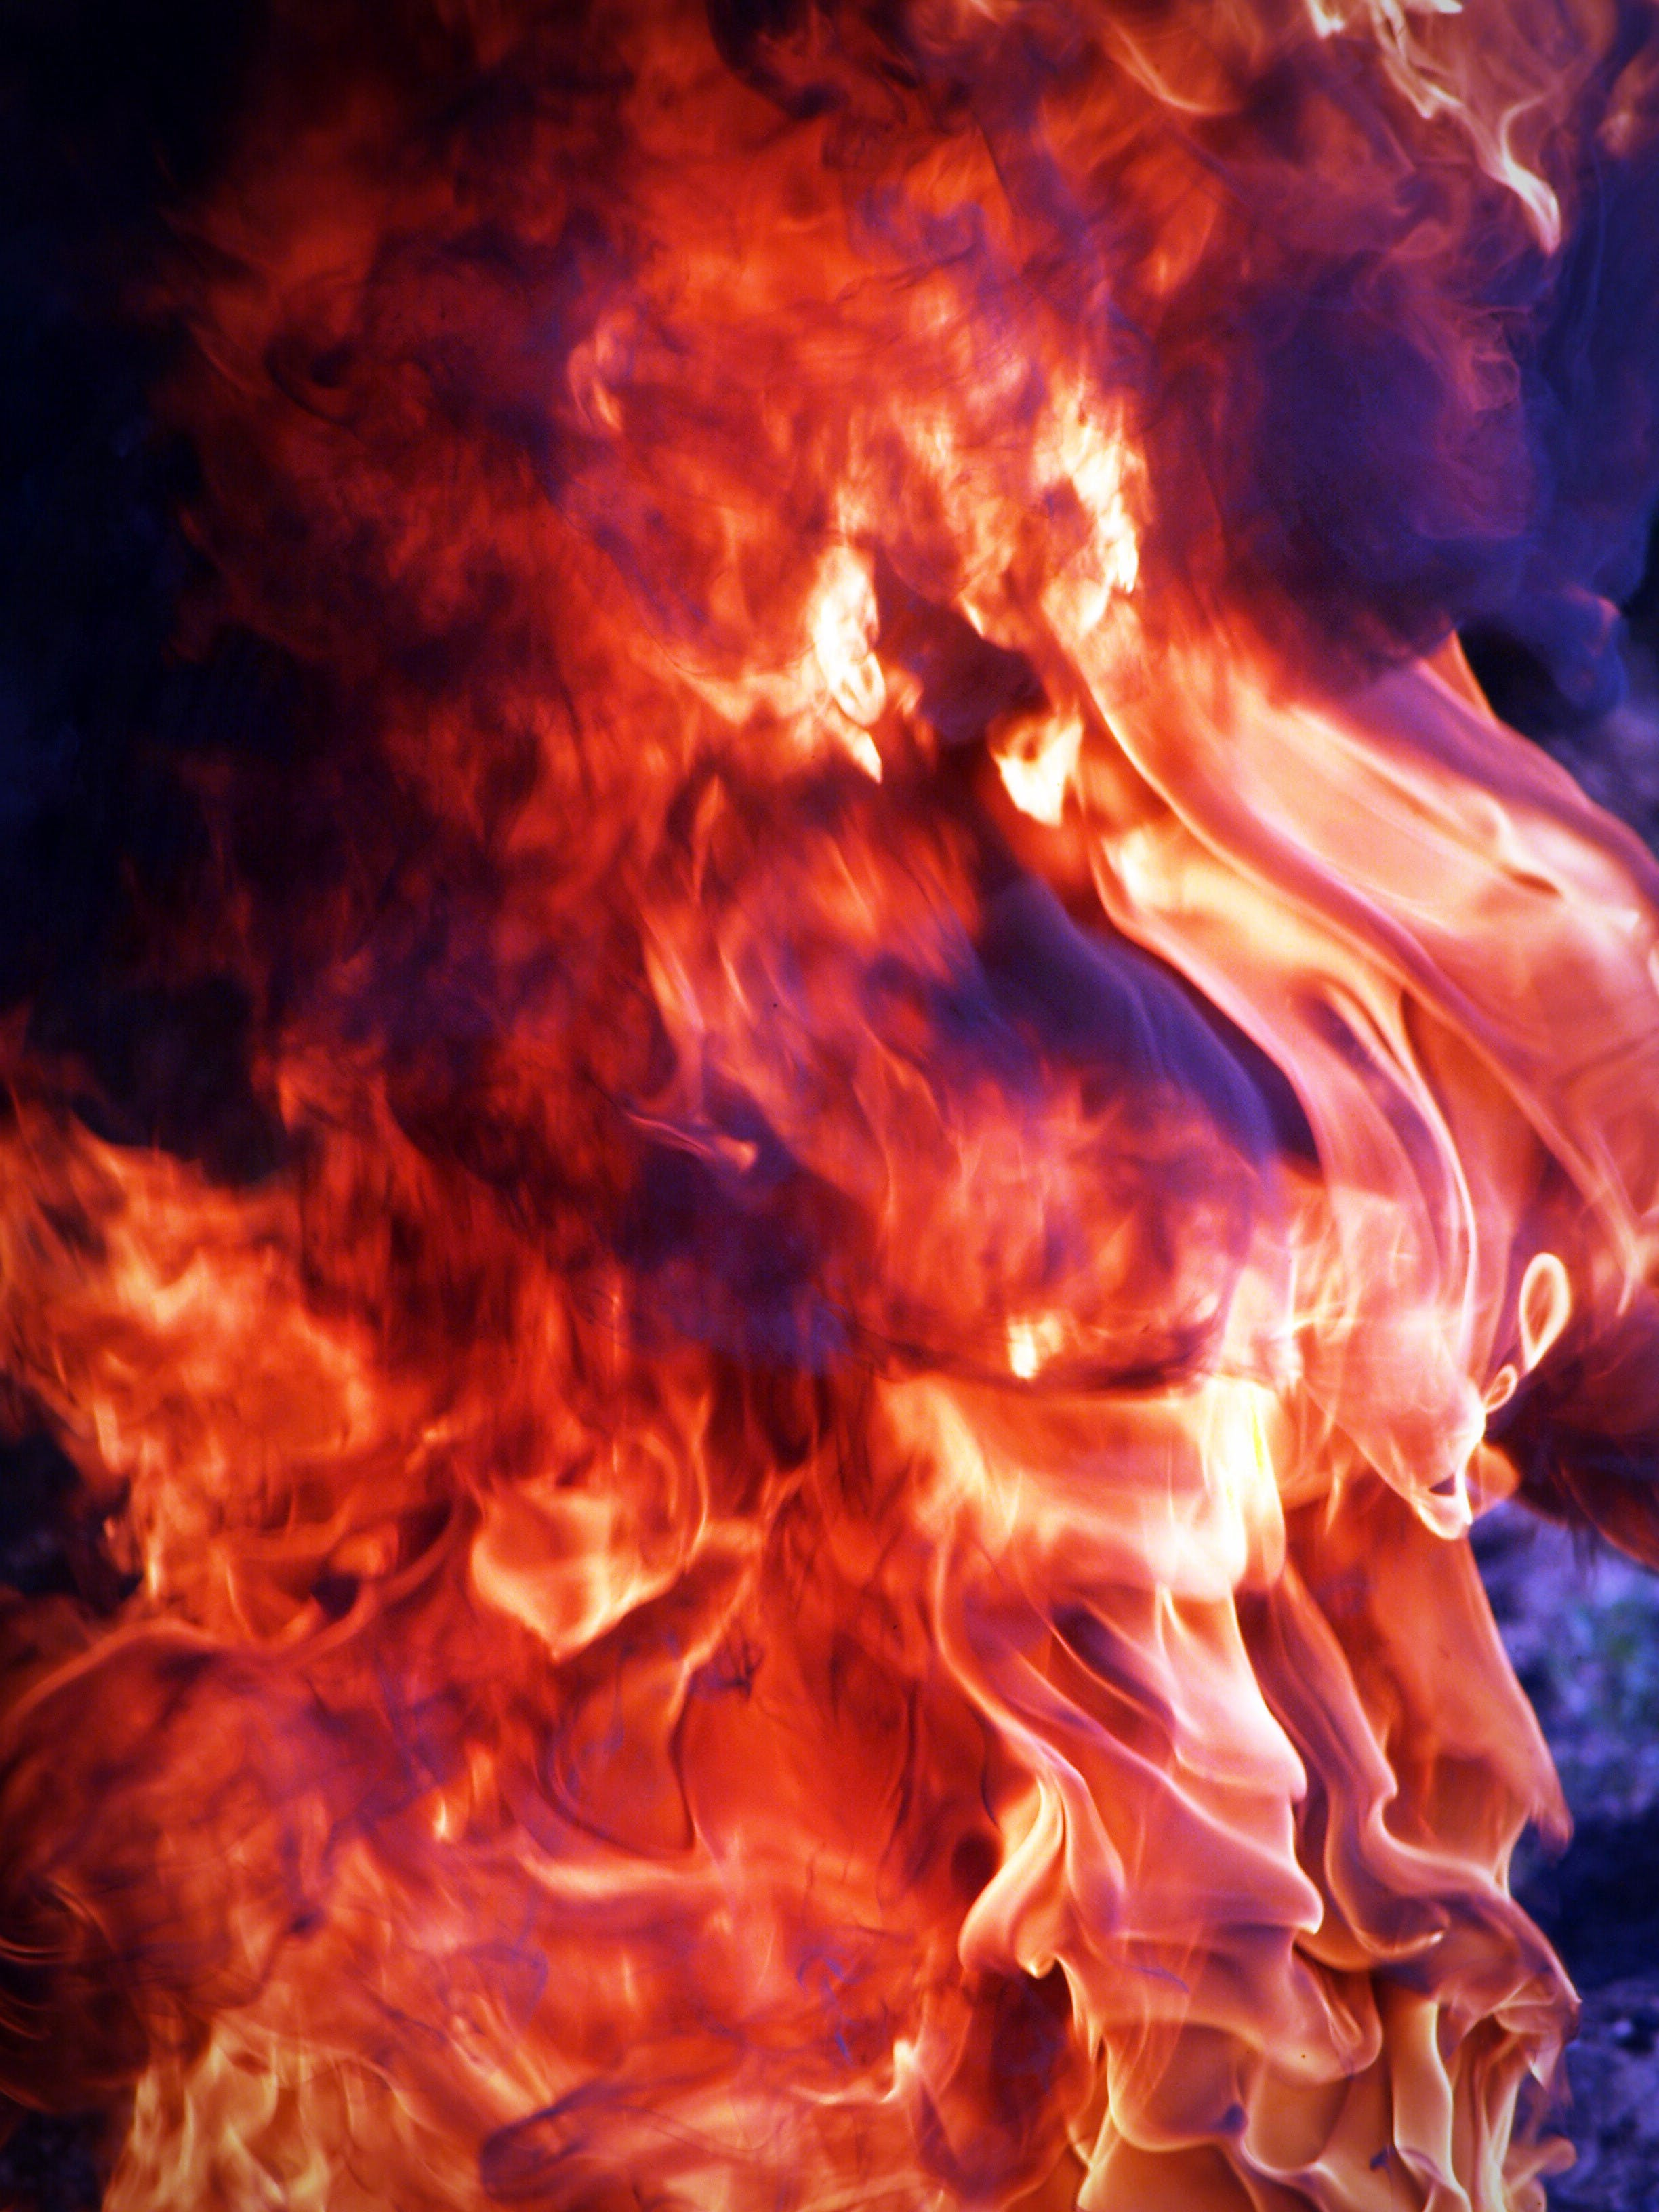 Free stock photo of fire, orange, flame, background